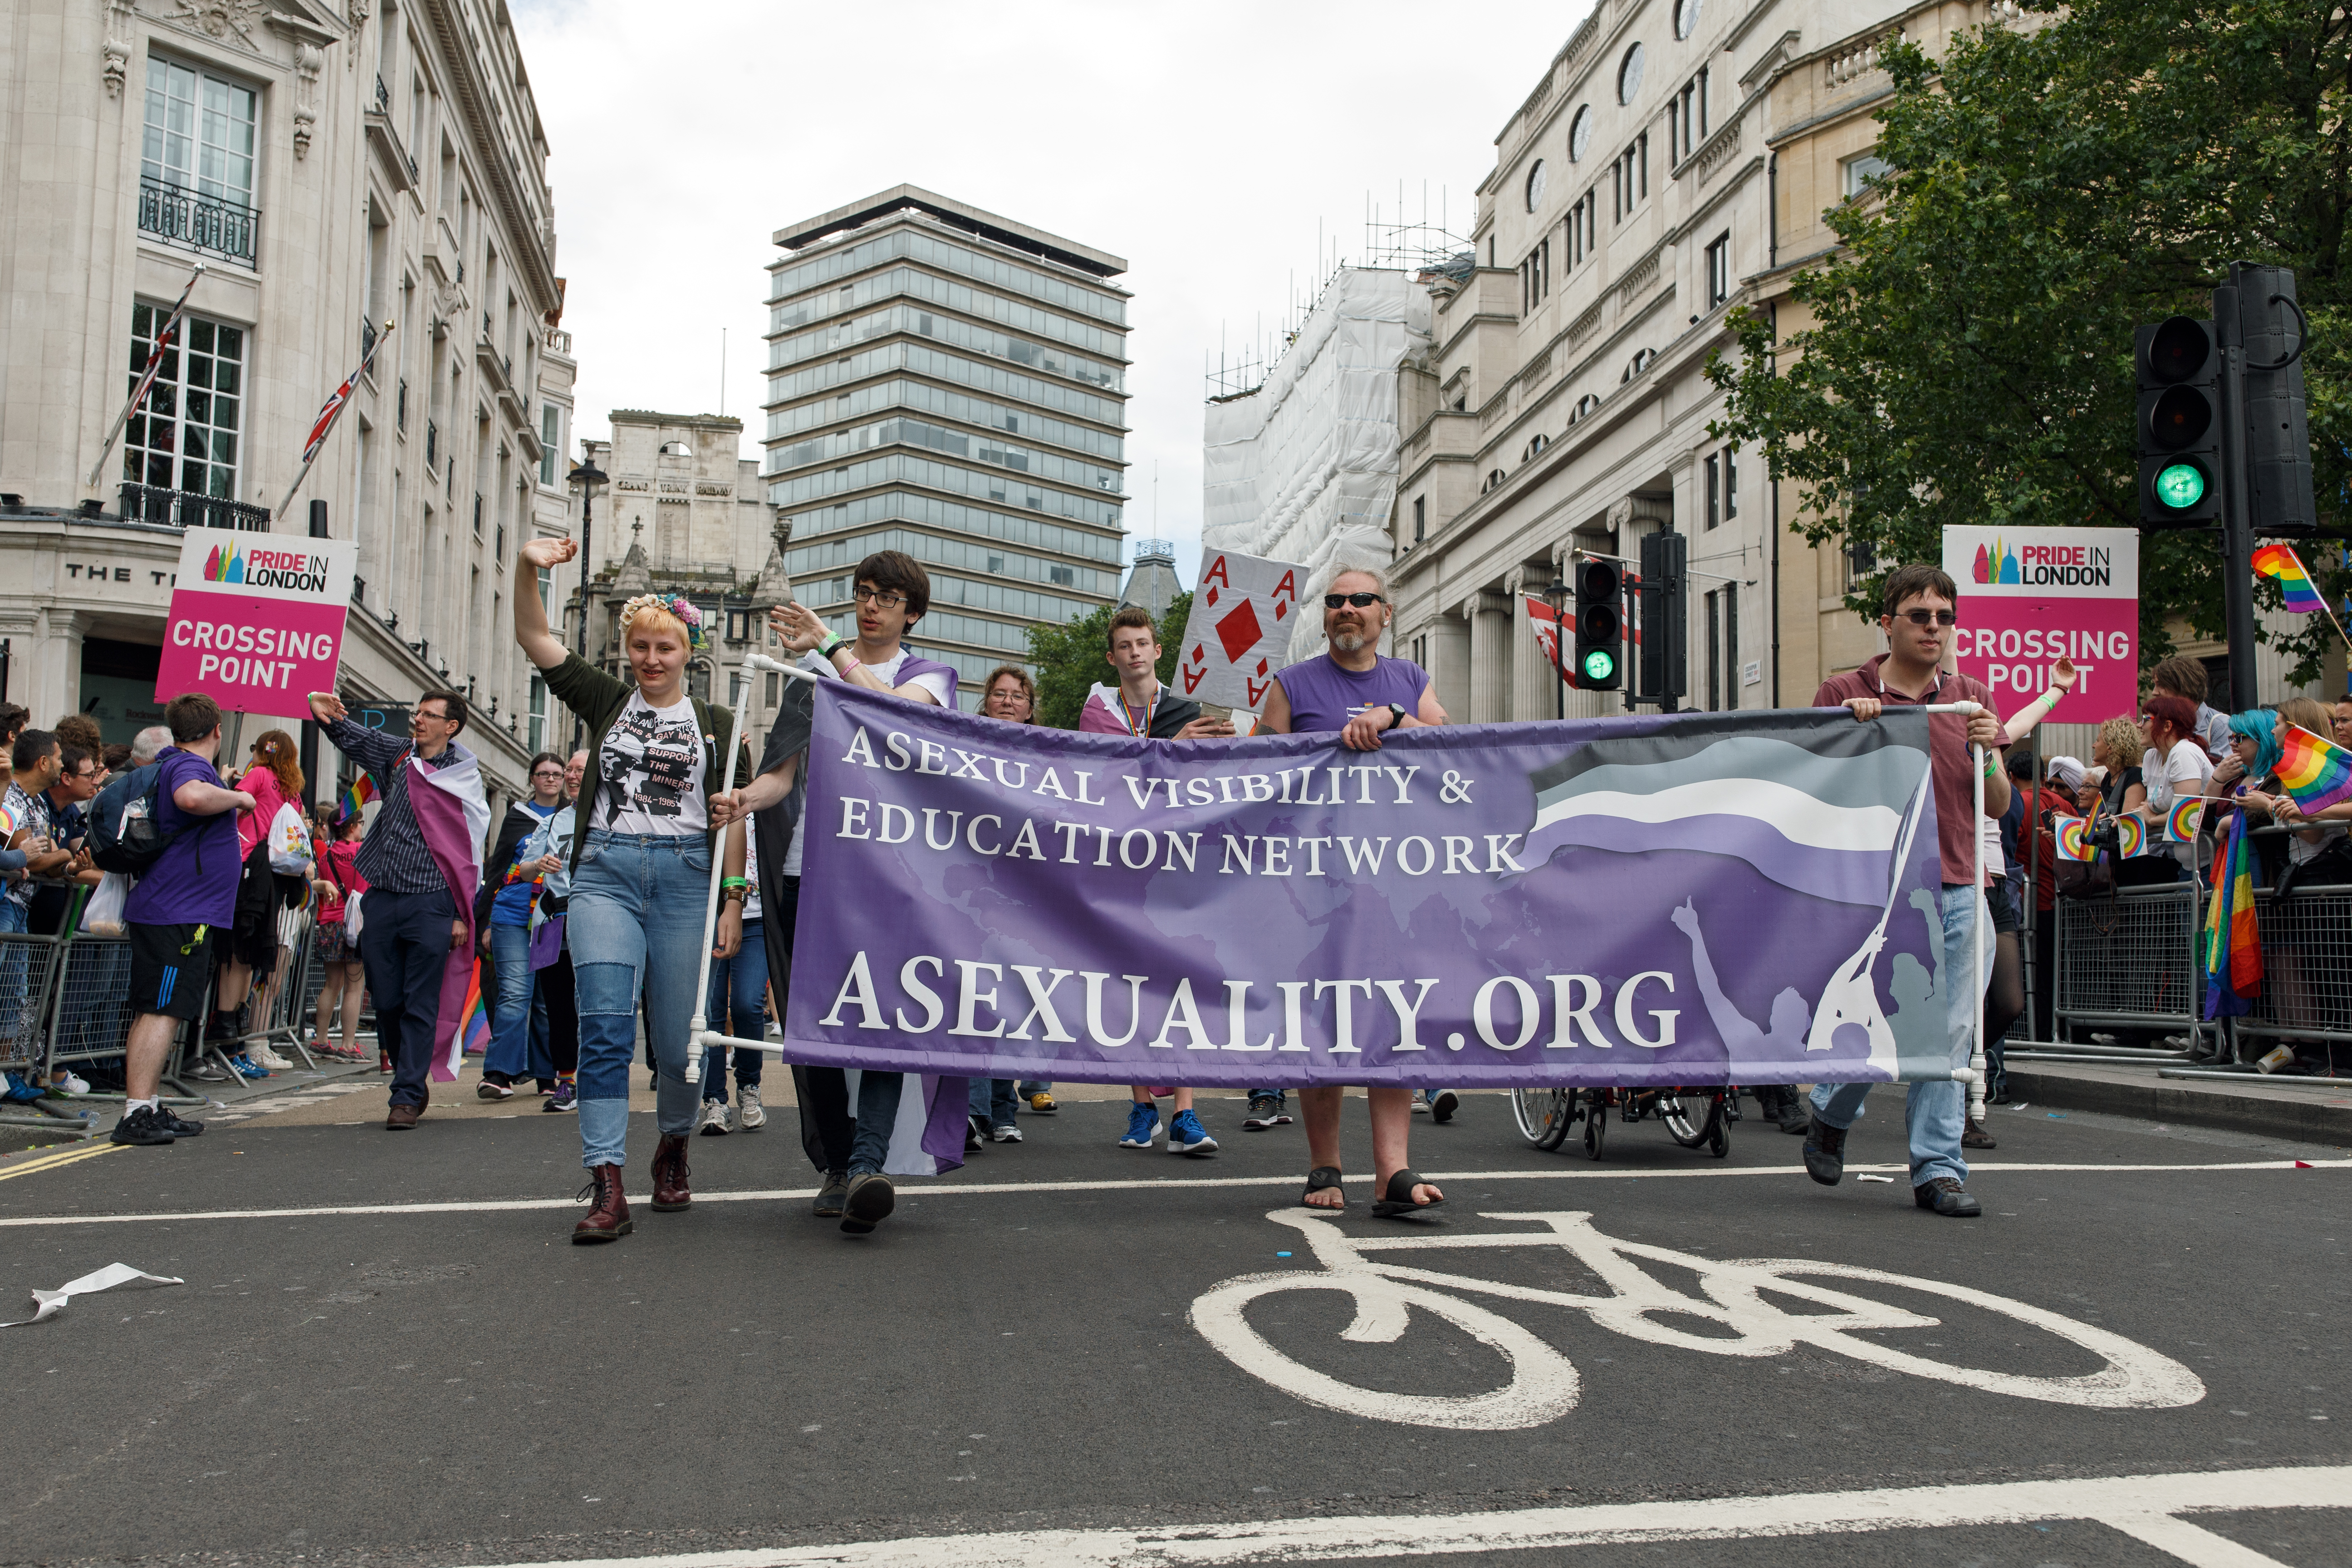 Asexual dating london